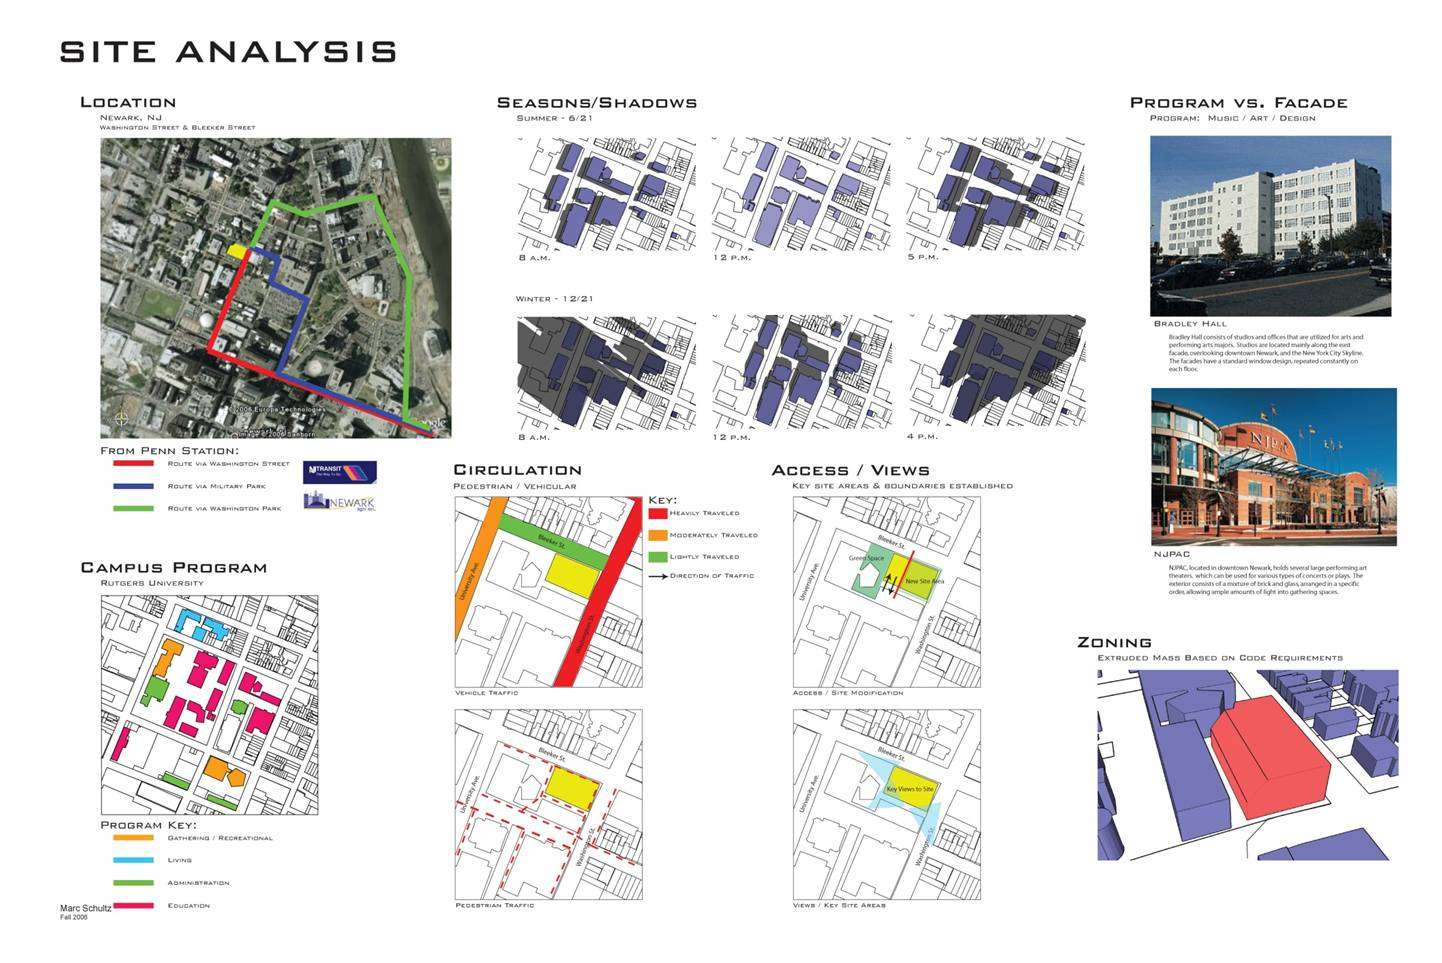 an analysis of the various finance sites Planners apply integrated analysis, so individual buildings similarly, planners are responsible for integrating various transport system components (walkways, parking facilities, driveways and financial advisors who help investors manage their wealth for example.